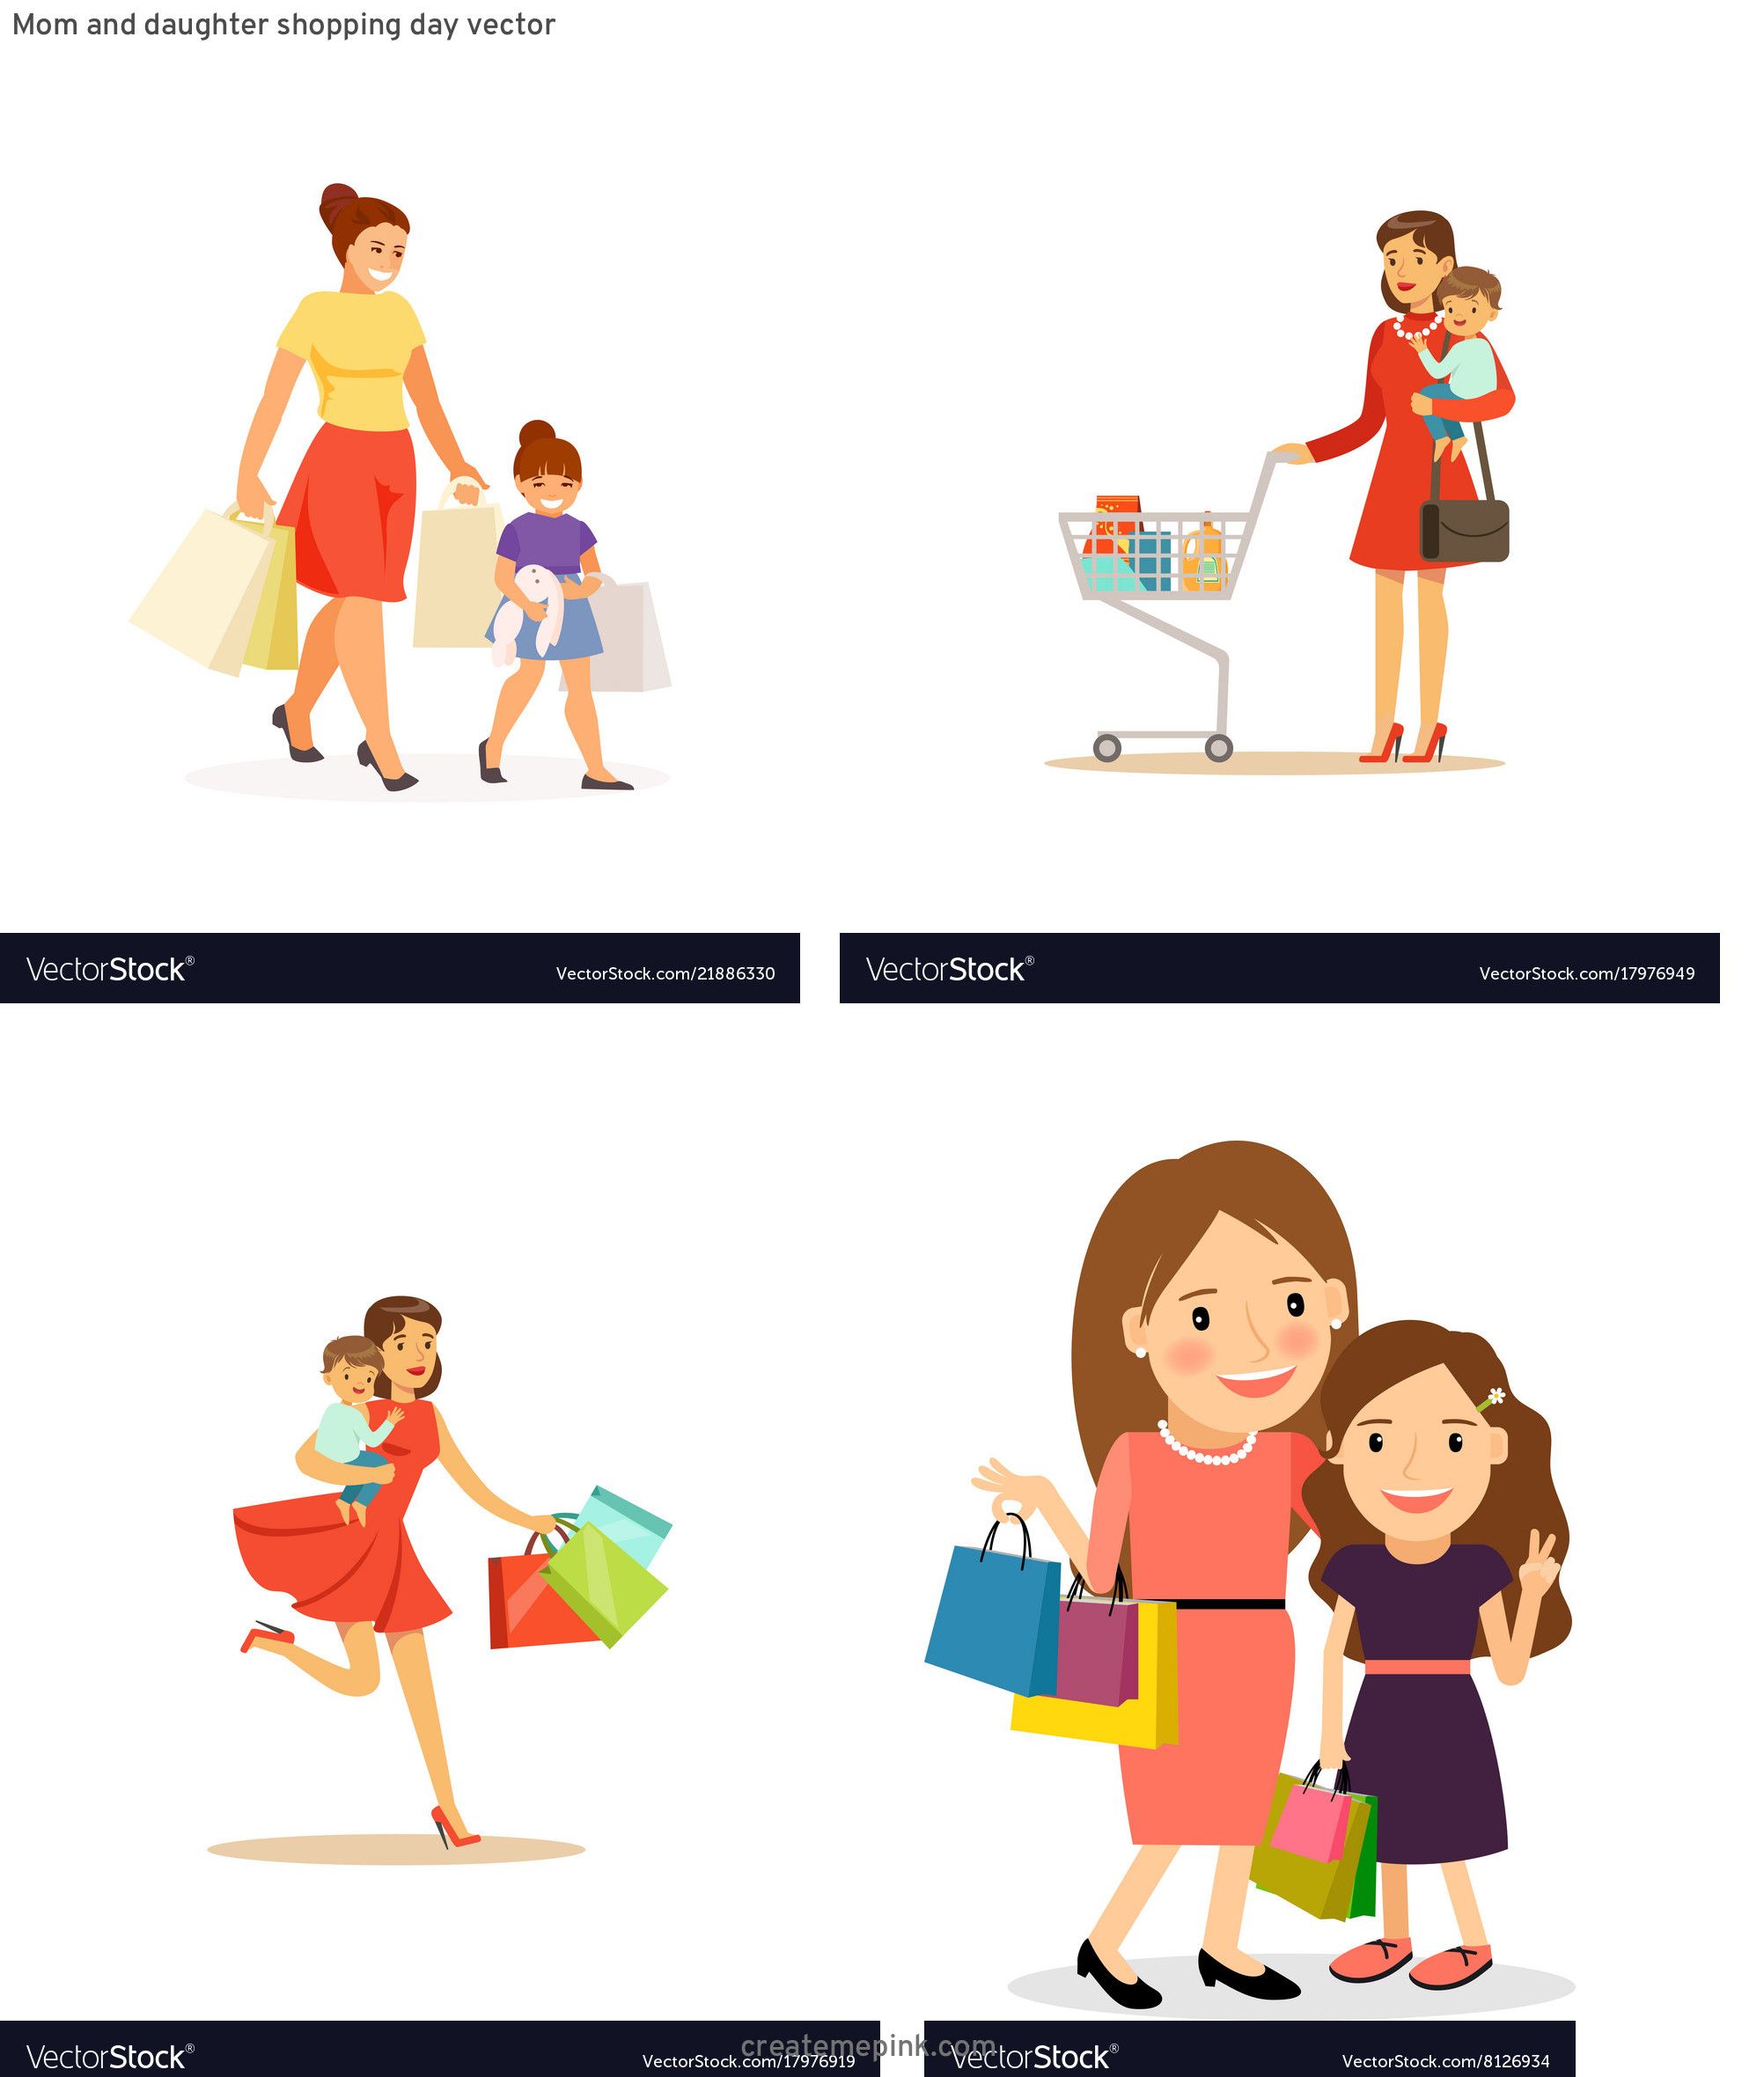 Shopping Vector Of Mom: Mom And Daughter Shopping Day Vector